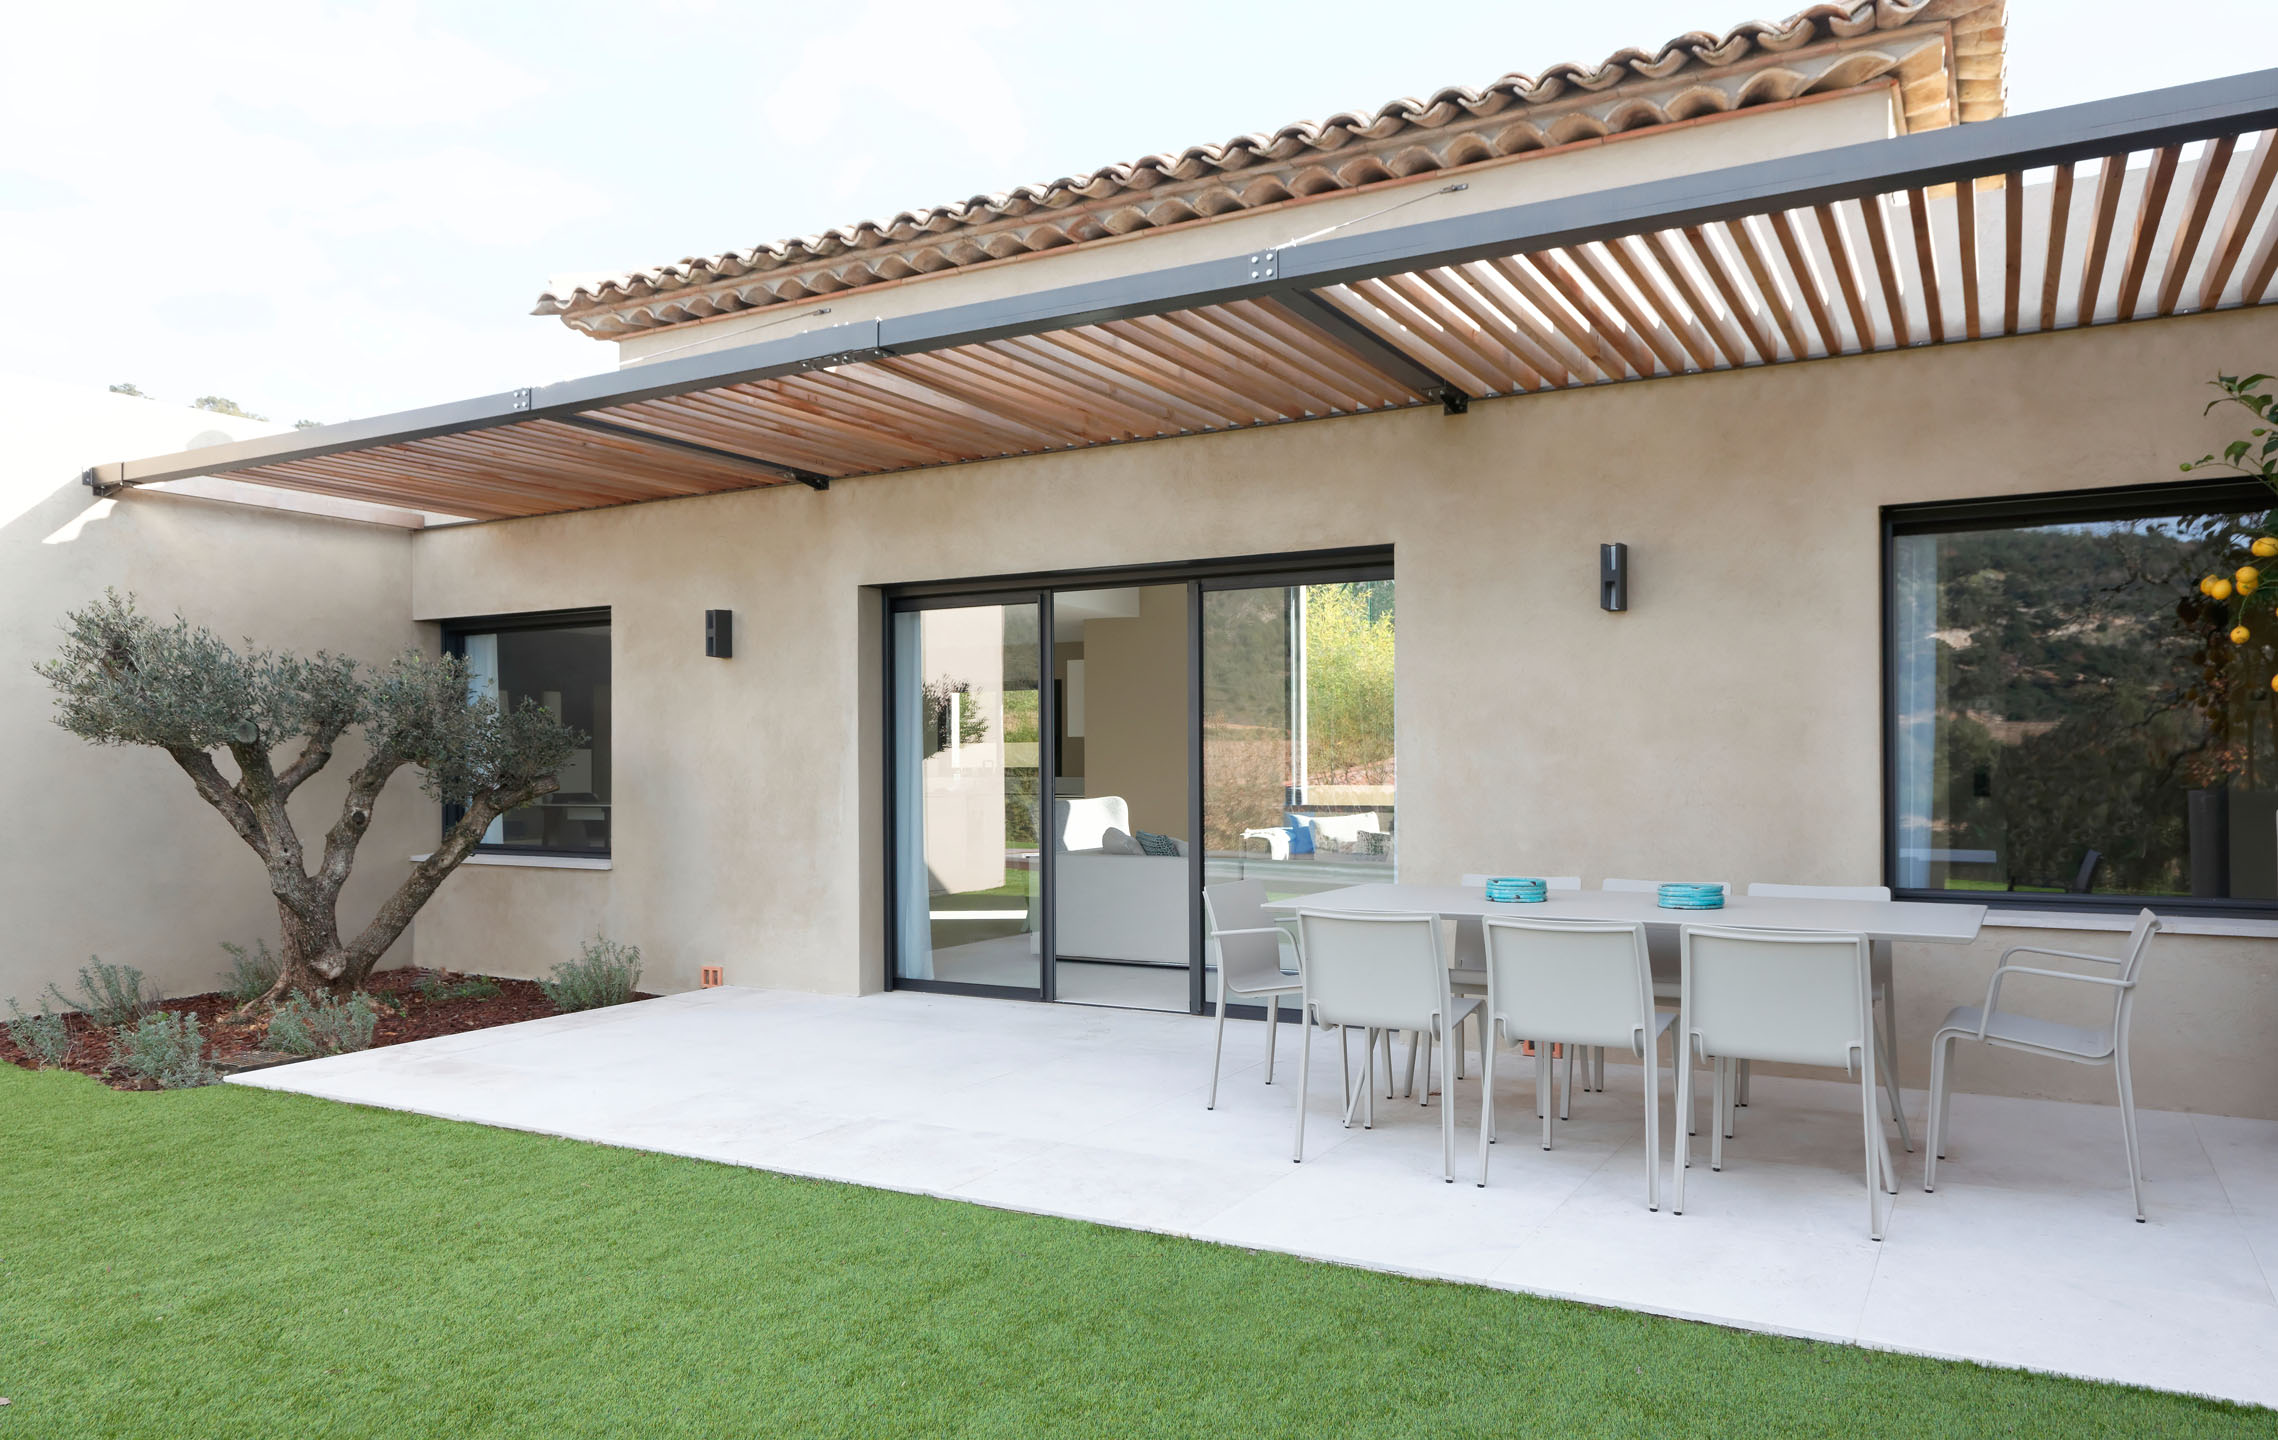 Populaire Rafflin Alu & PVC | Construction neuve, maison contemporaine  SO56